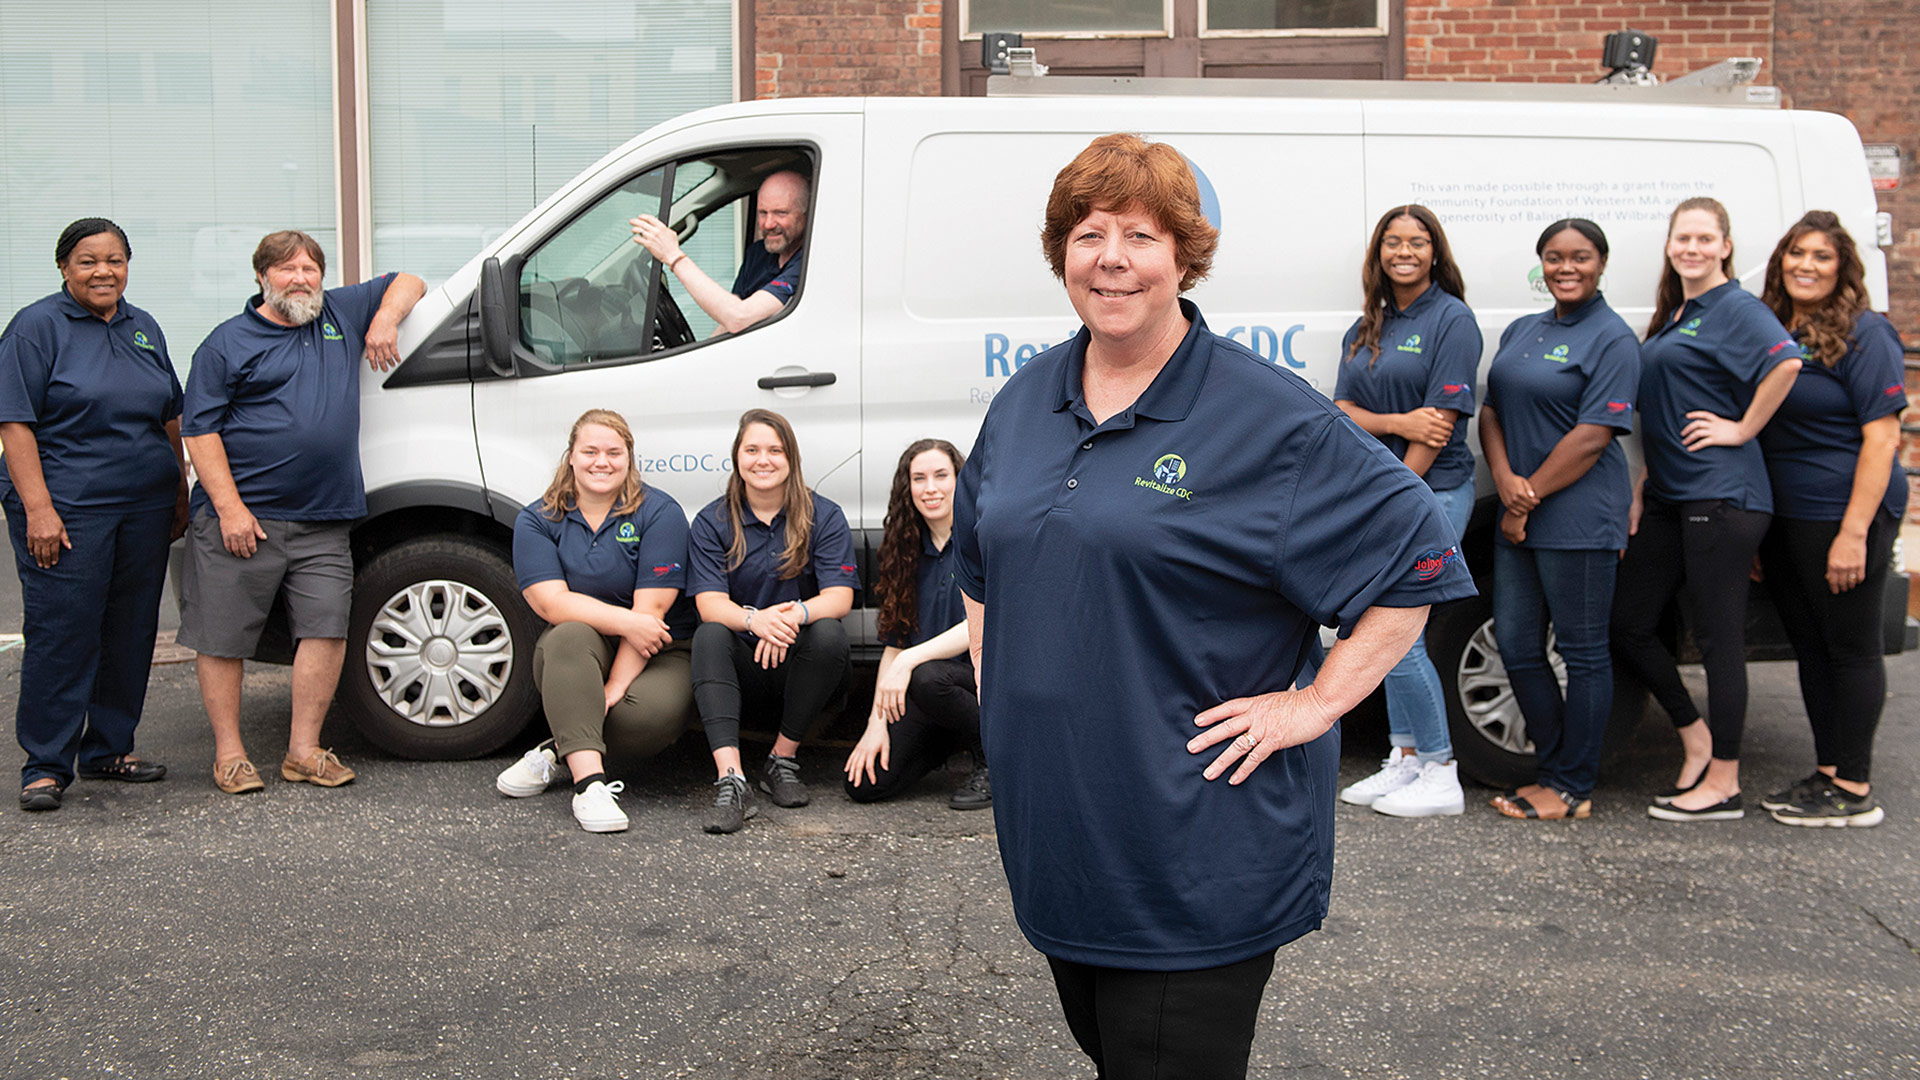 By partnering with health-centric organizations, Colleen Loveless (center) and Revitalize CDC was able to infuse its home-rehab efforts with a focus on wellness.